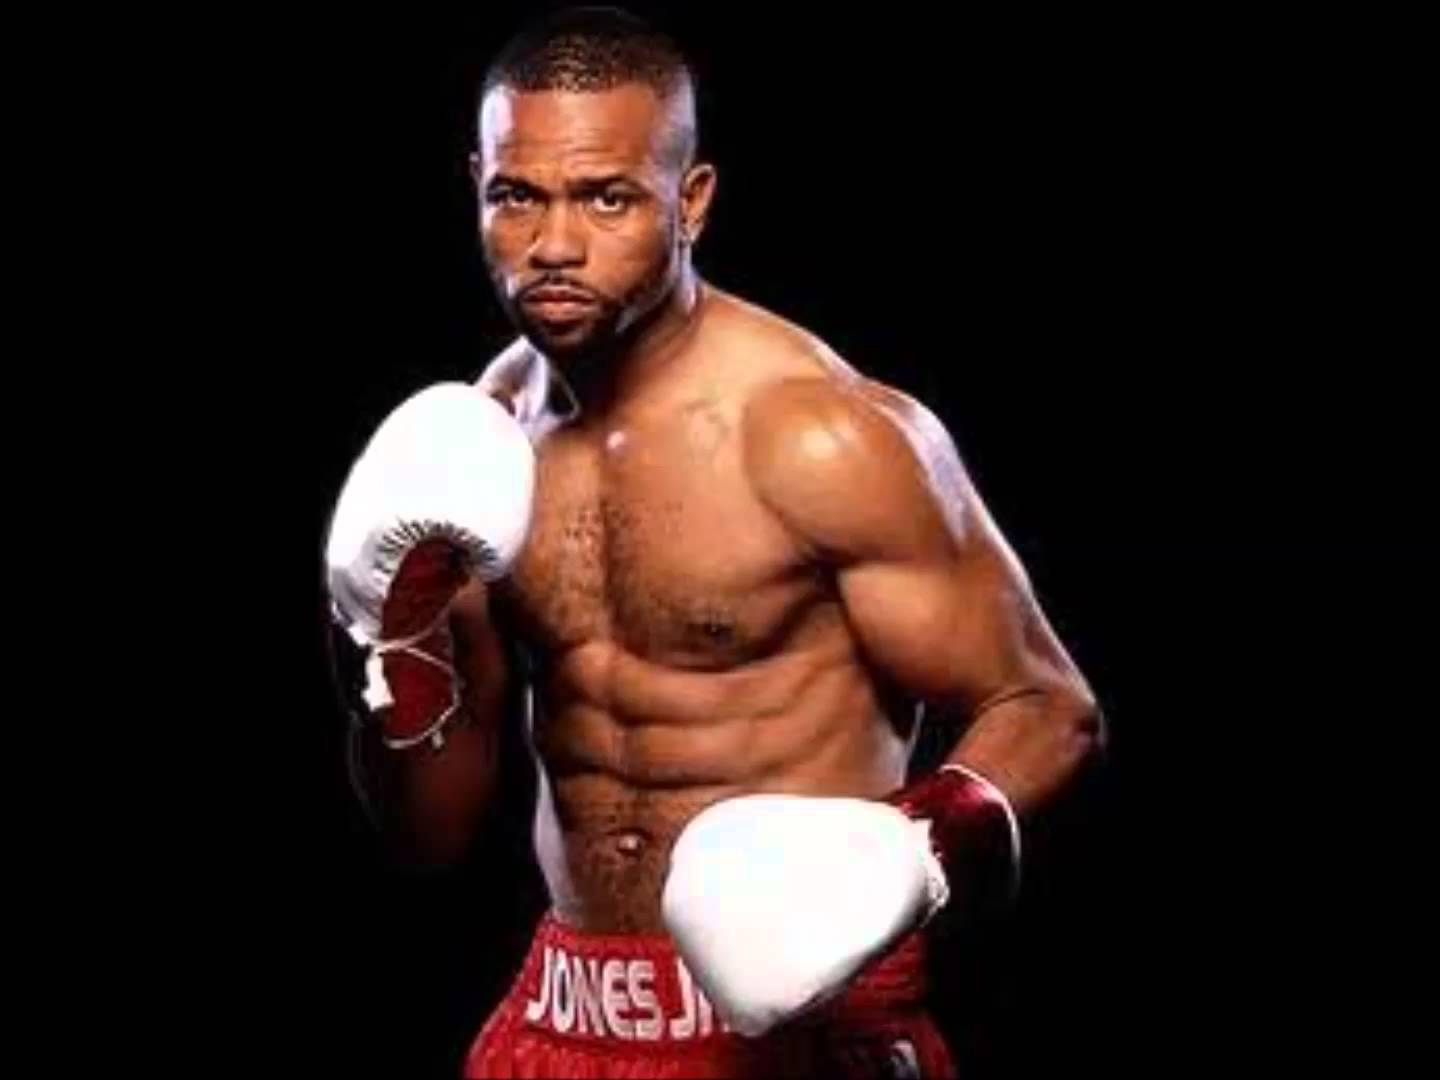 Roy Jones Jr. insiste en seguir en el boxeo